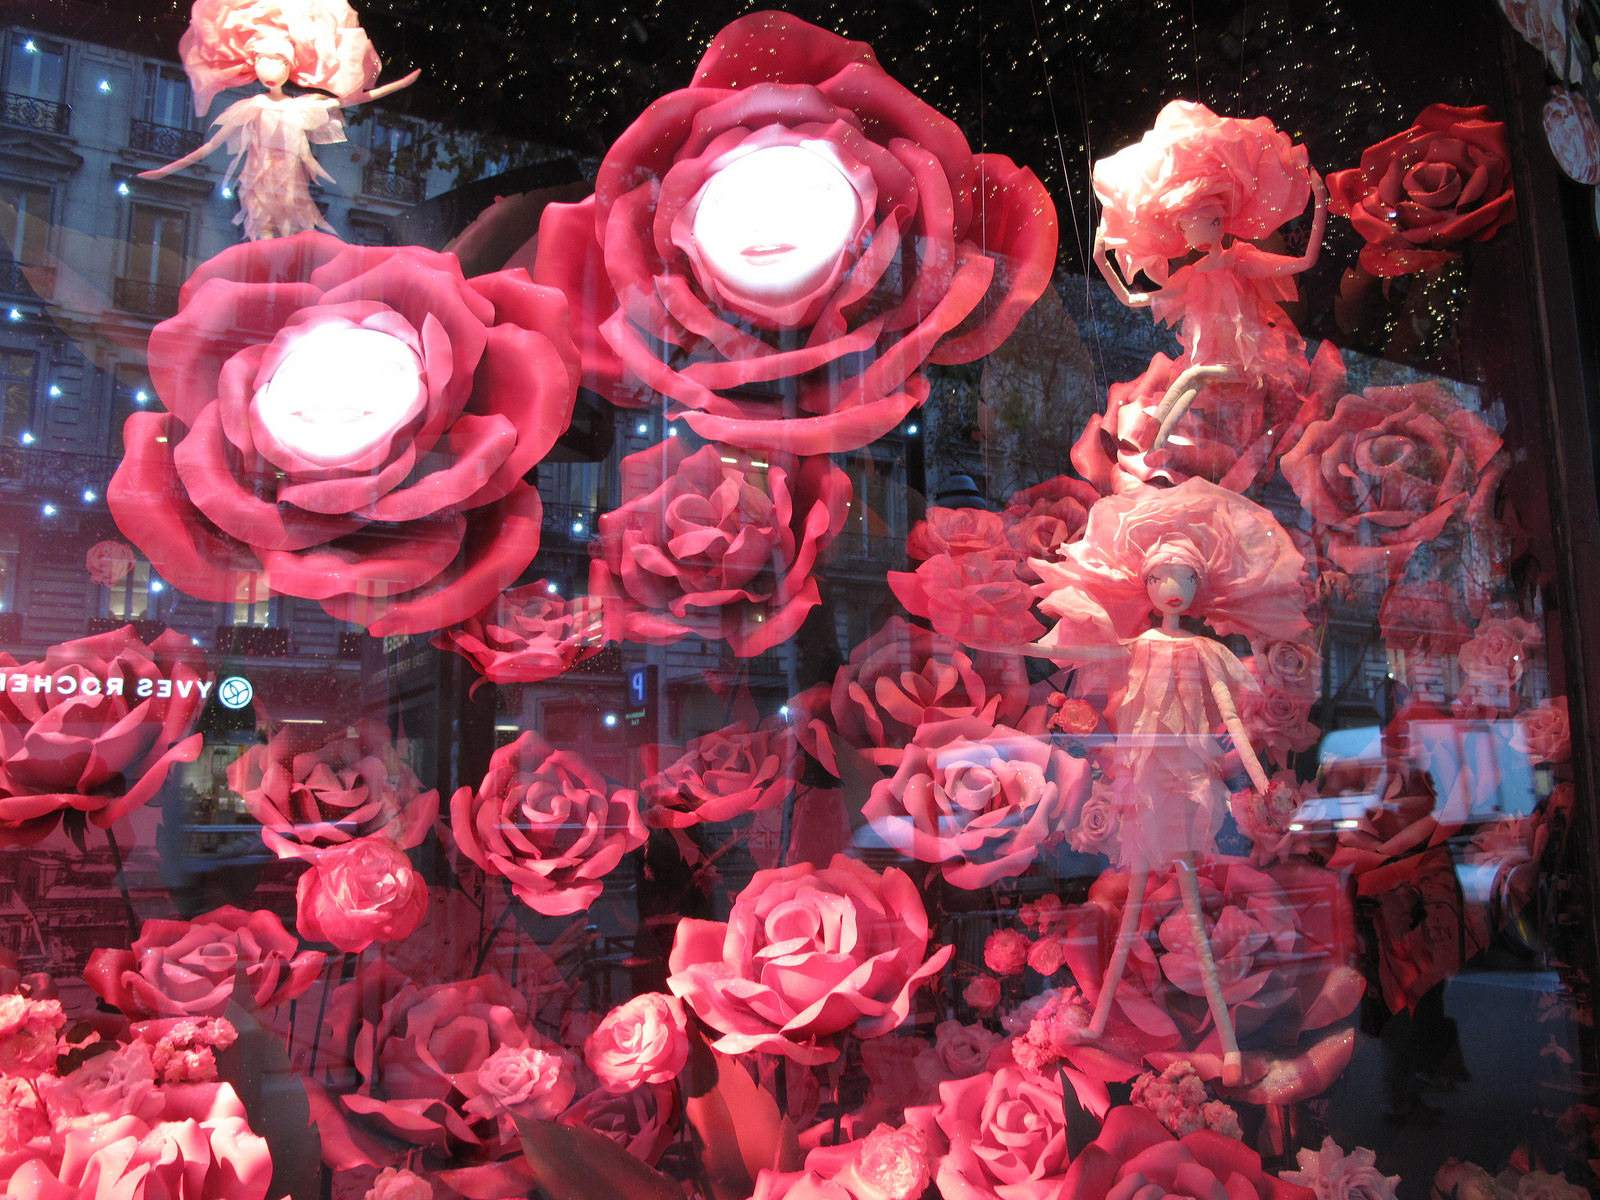 vitrines noel4 Christmas window displays in Paris